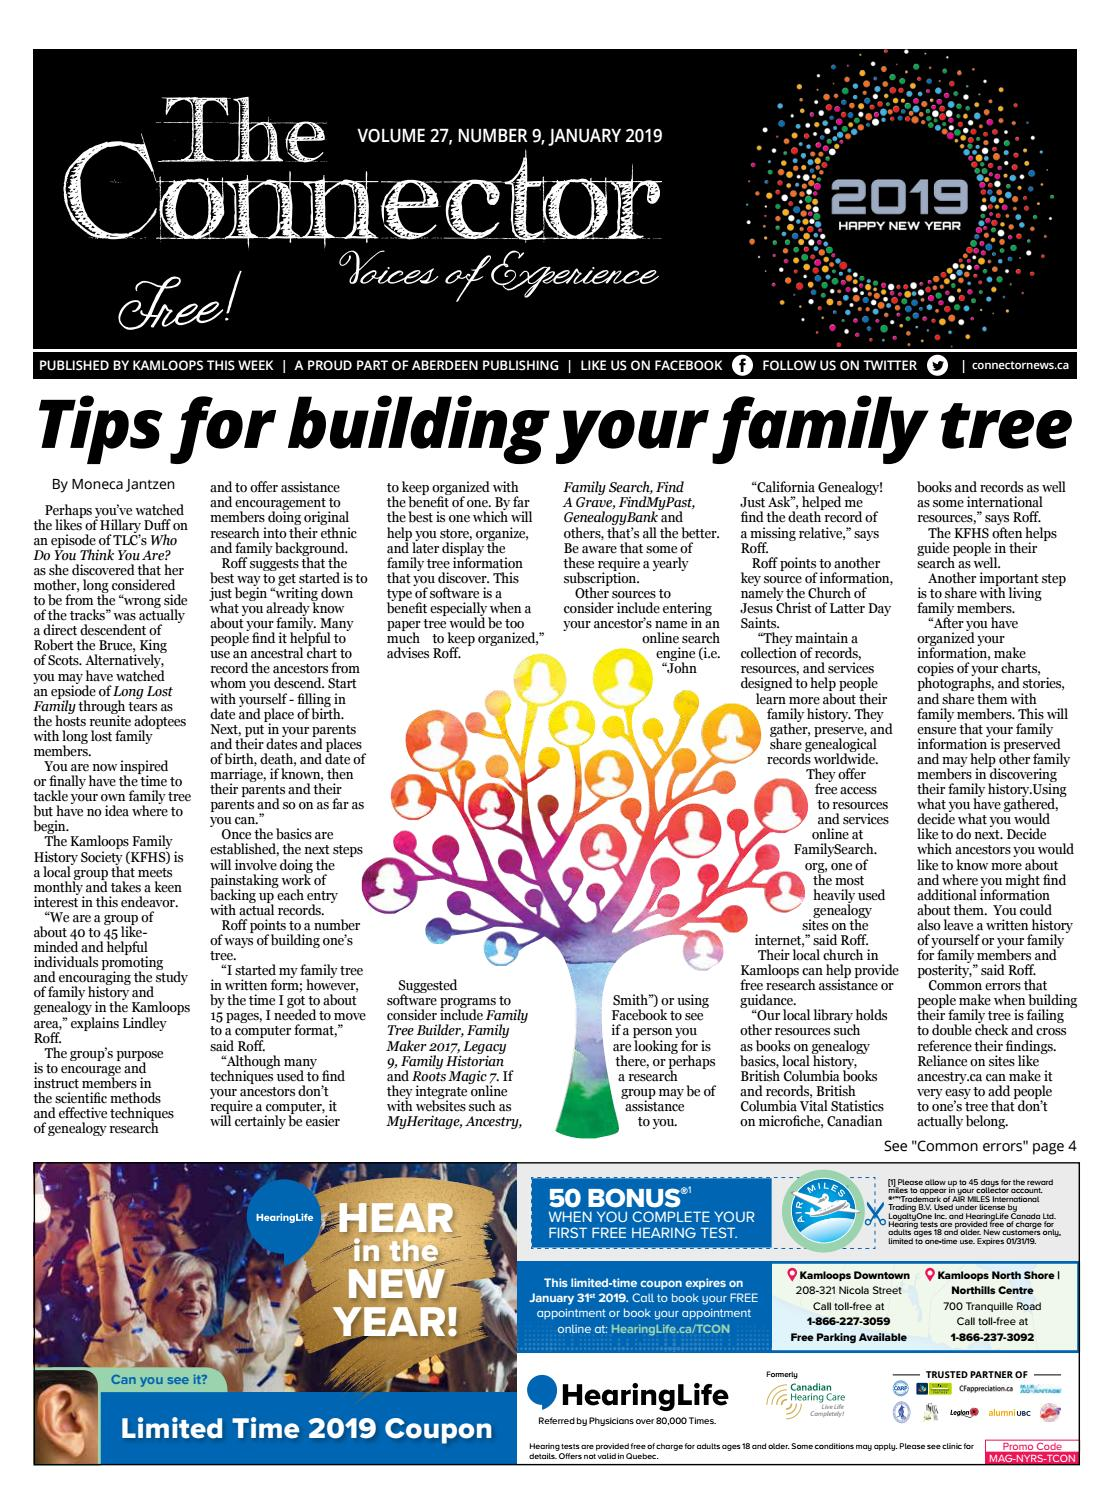 The Connector January 2019 By The Connector Issuu